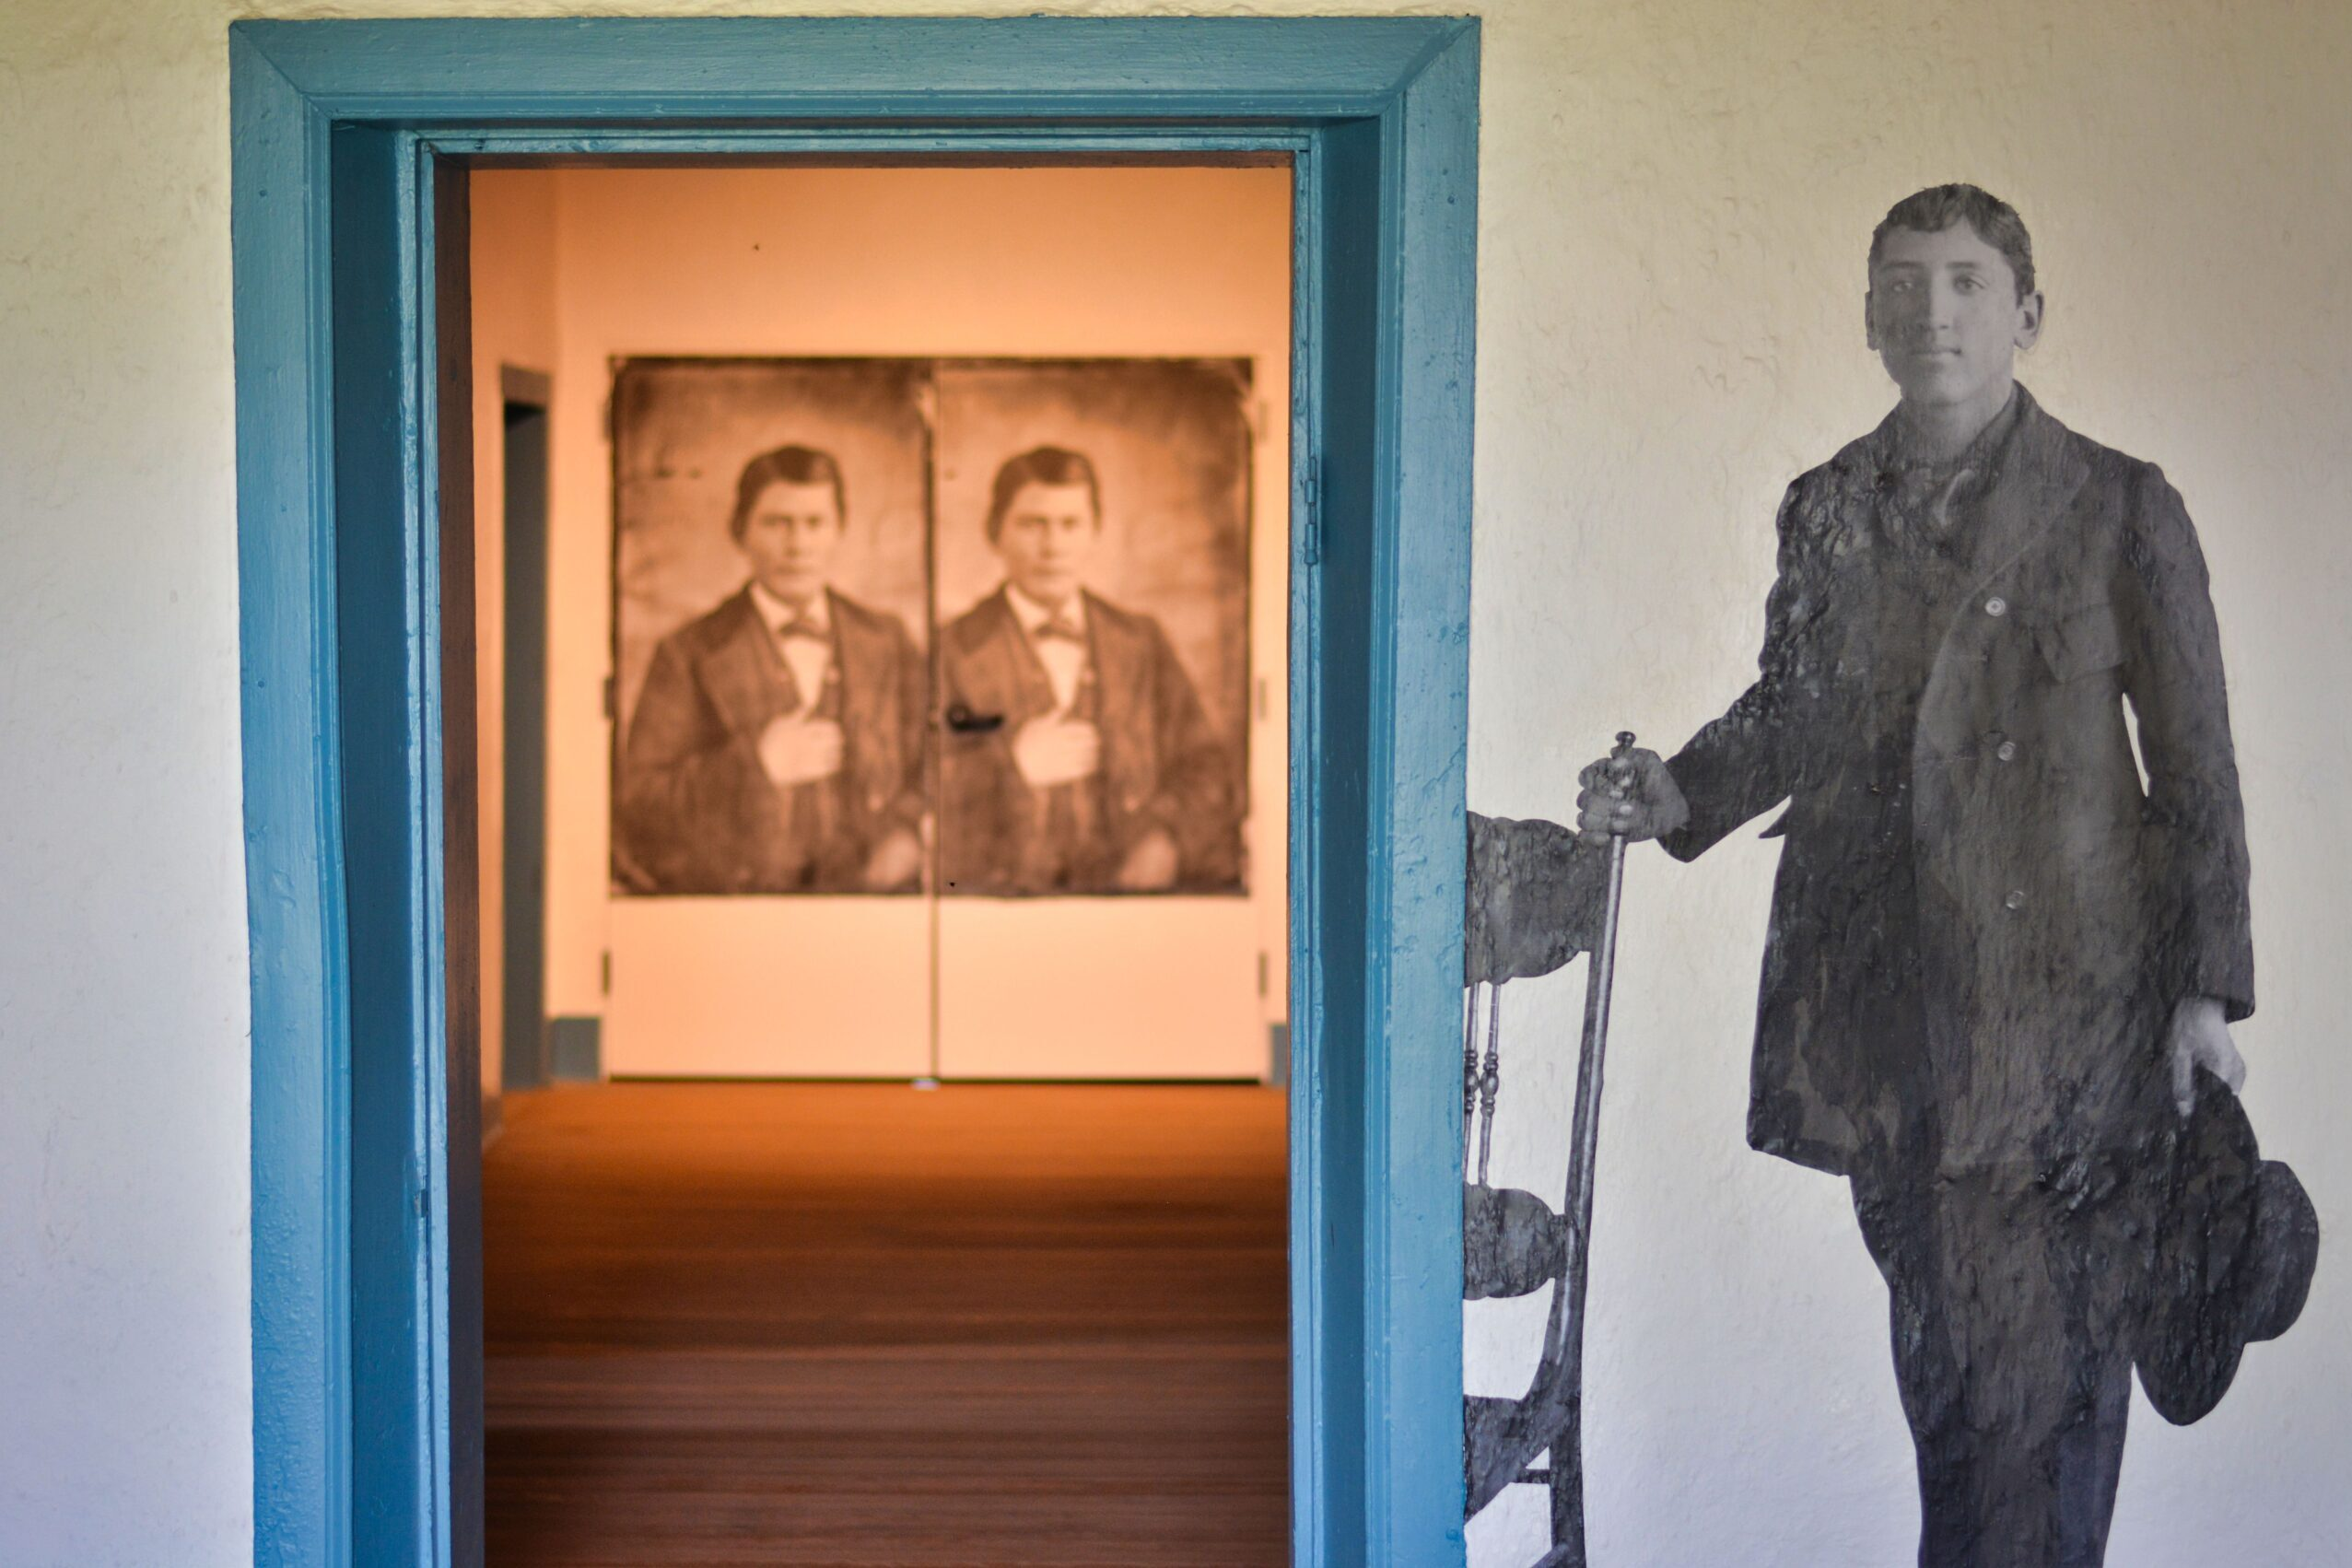 Juan Carson (center), an enslaved Navajo youth, and Gabriel Woodson (right), an enslaved Navajo person in the San Luis Valley, circa 1880. (Right image courtesy Saguache County Museum). From Unsilenced: Indigenous Enslavement in Southern Colorado at the Fort Garland Museum and Cultural Center.